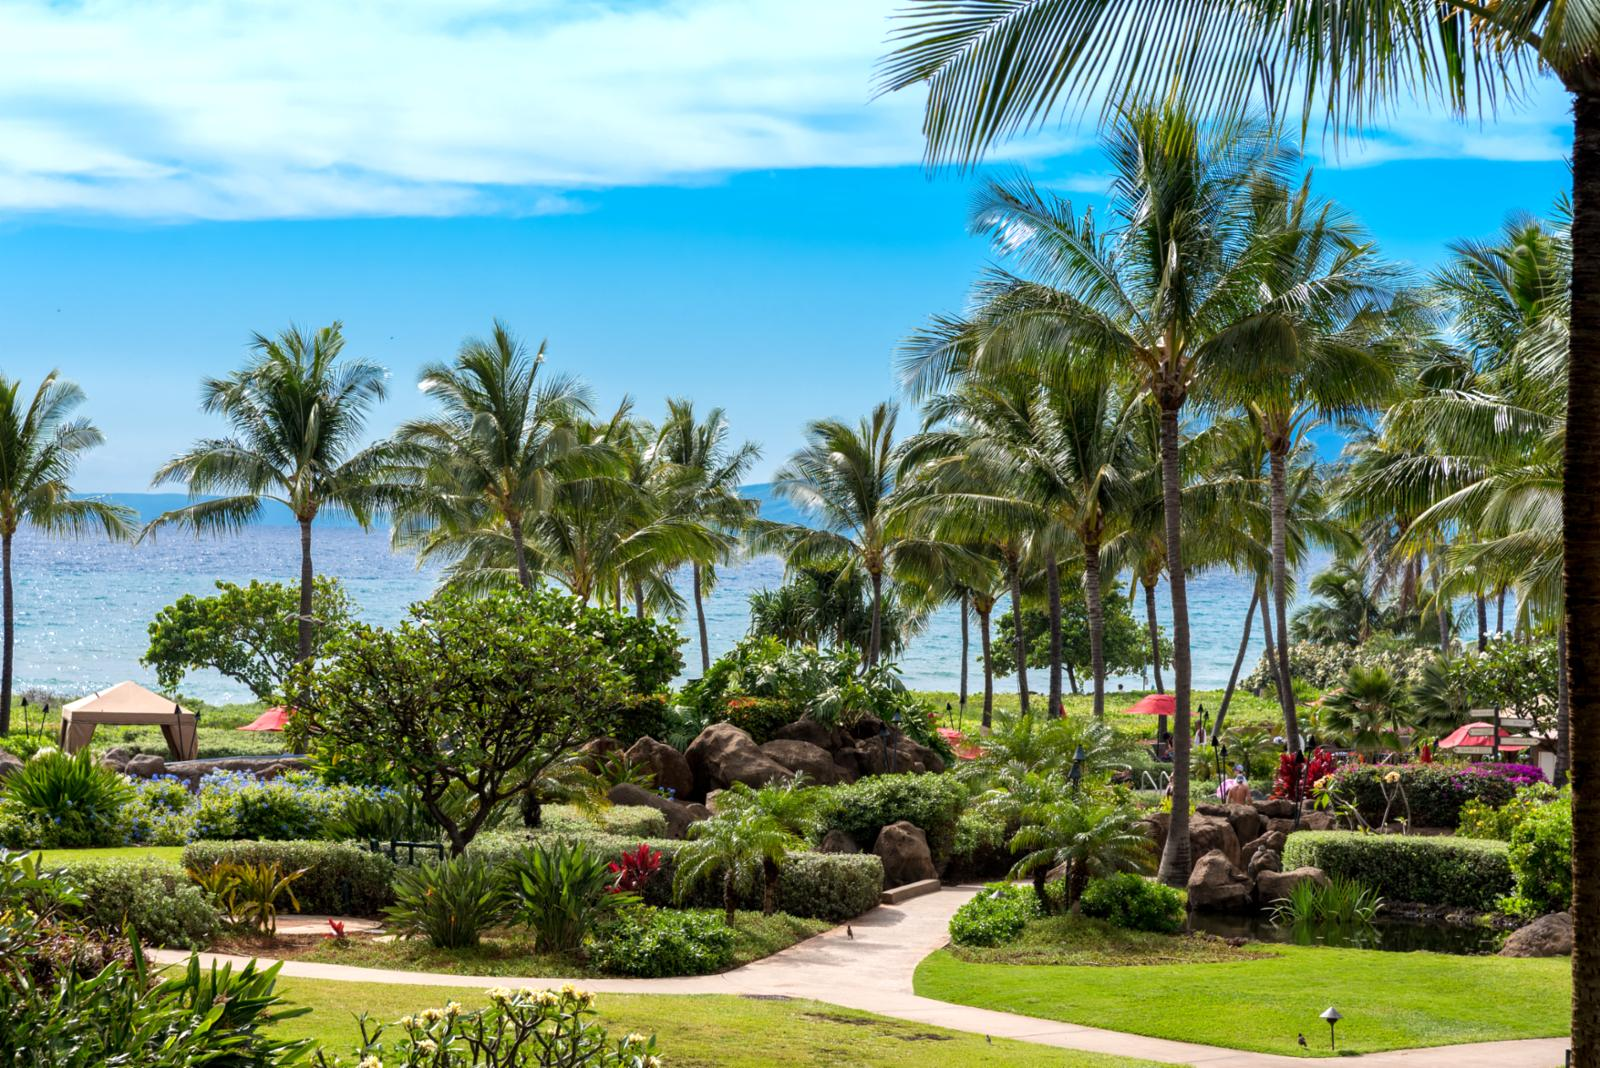 Enjoy ocean views from the lanai with soothing trade wind breezes.